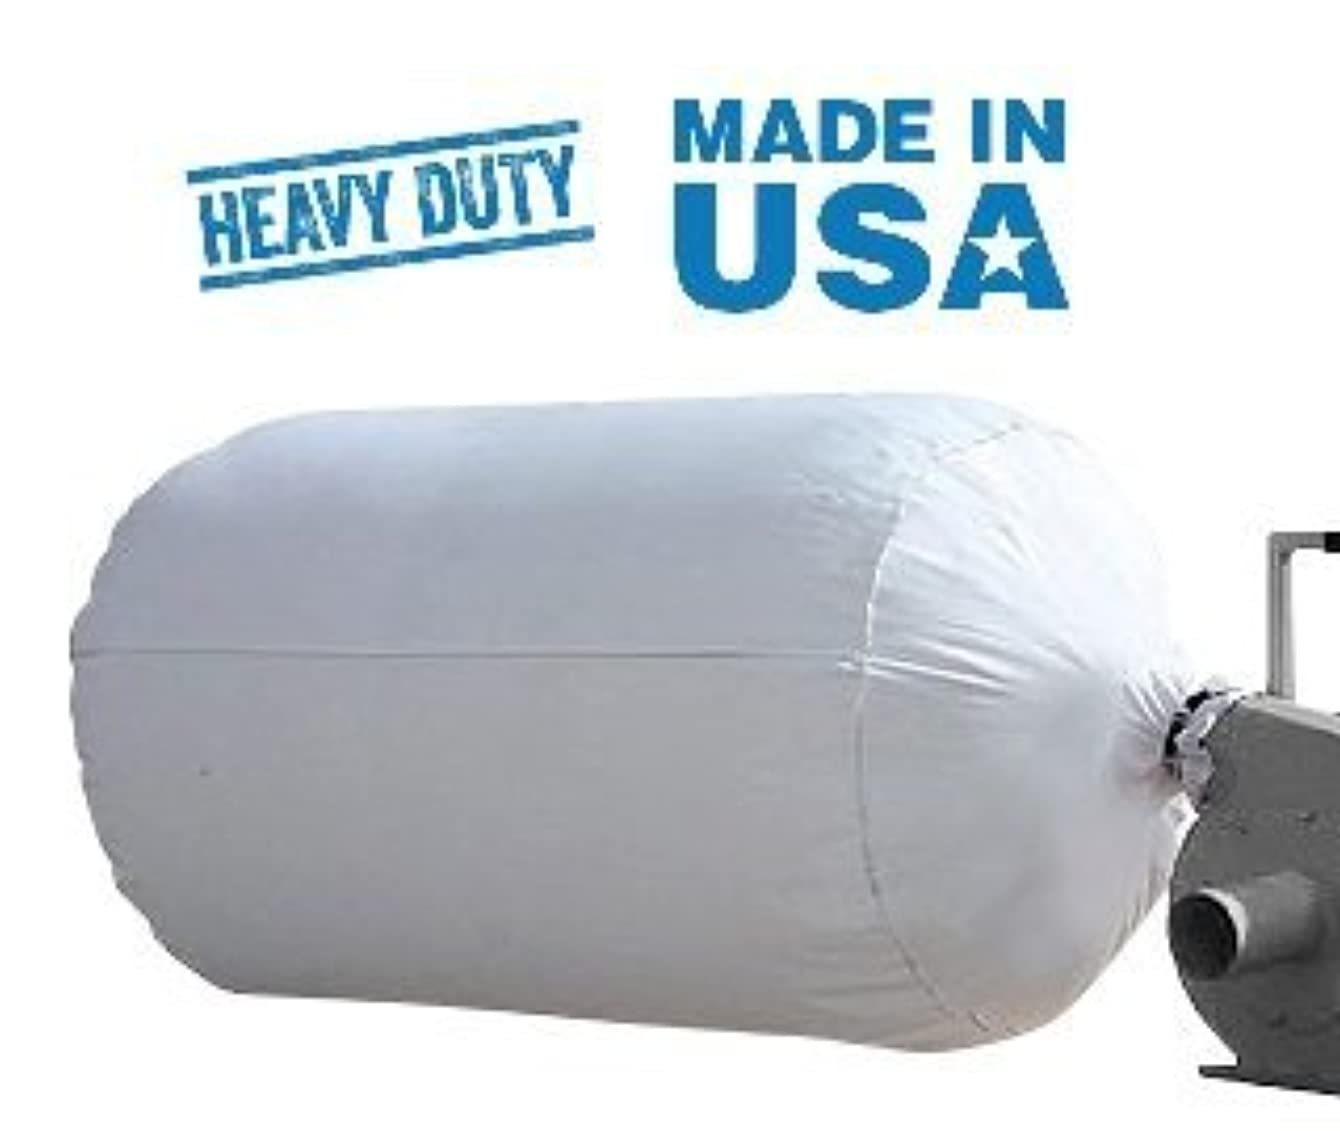 Midwest Filter Heavy Duty Insulation Removal Bags, 4x6, 75 Cubic Feet, Made in USA (3)